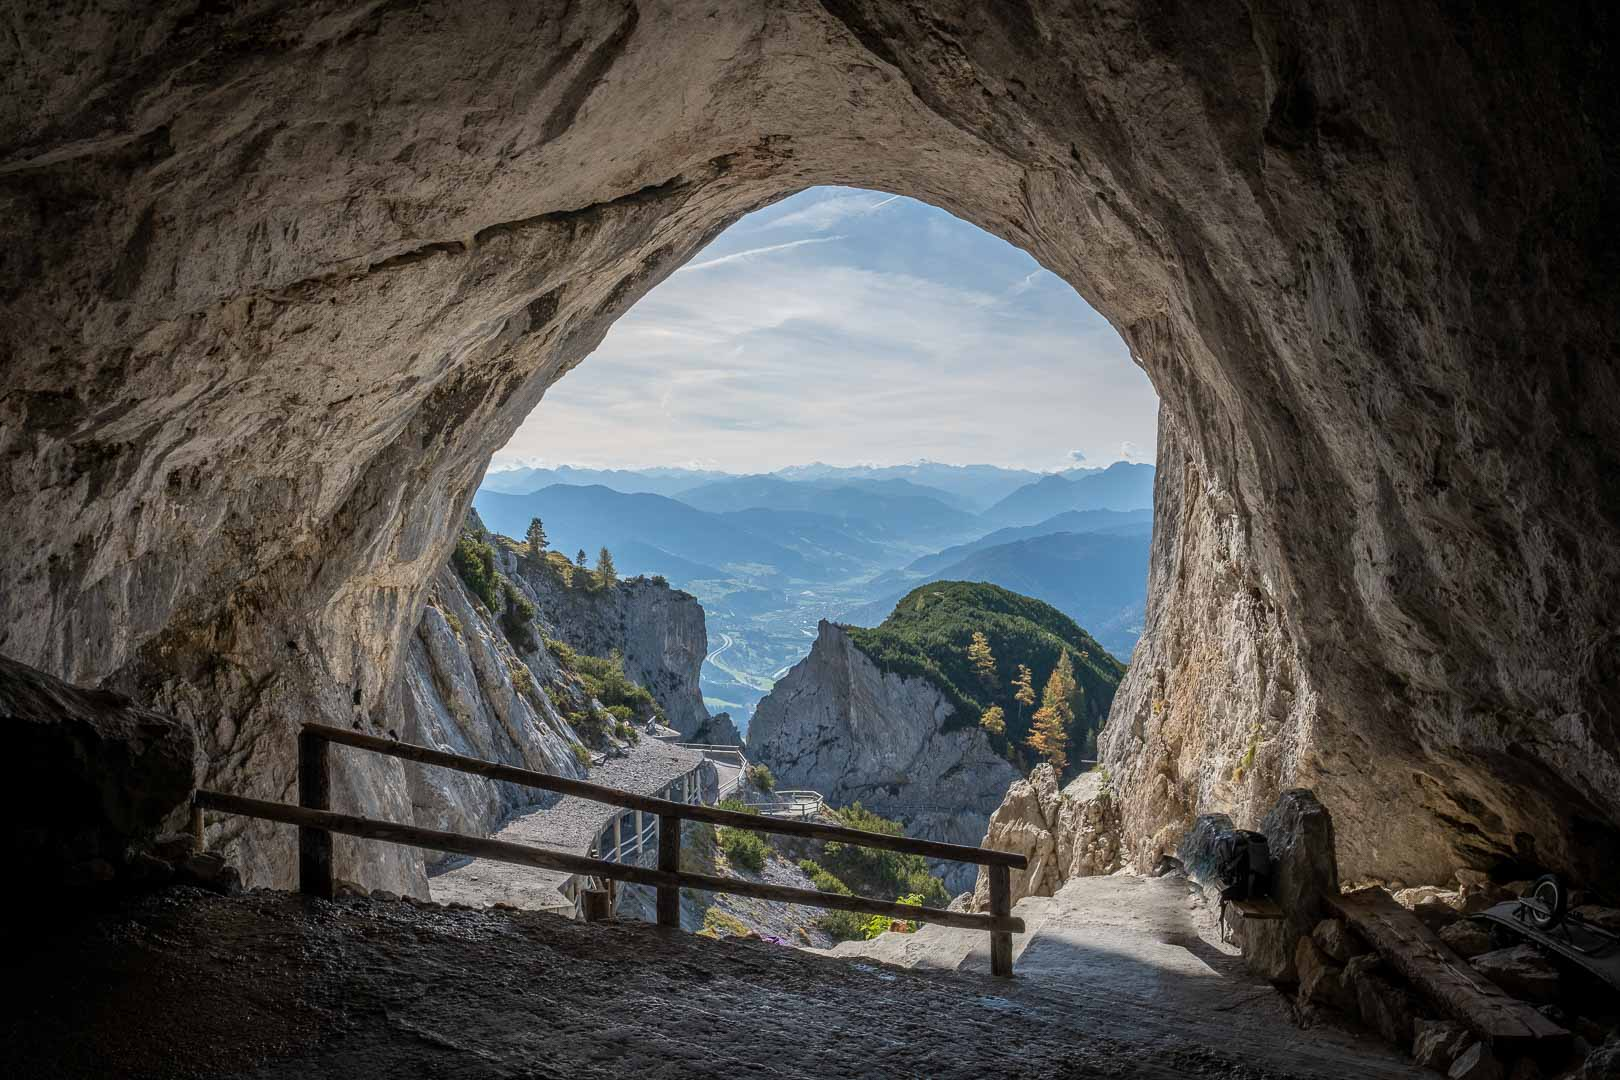 The View from the Entrance to the Werfen Ice Caves